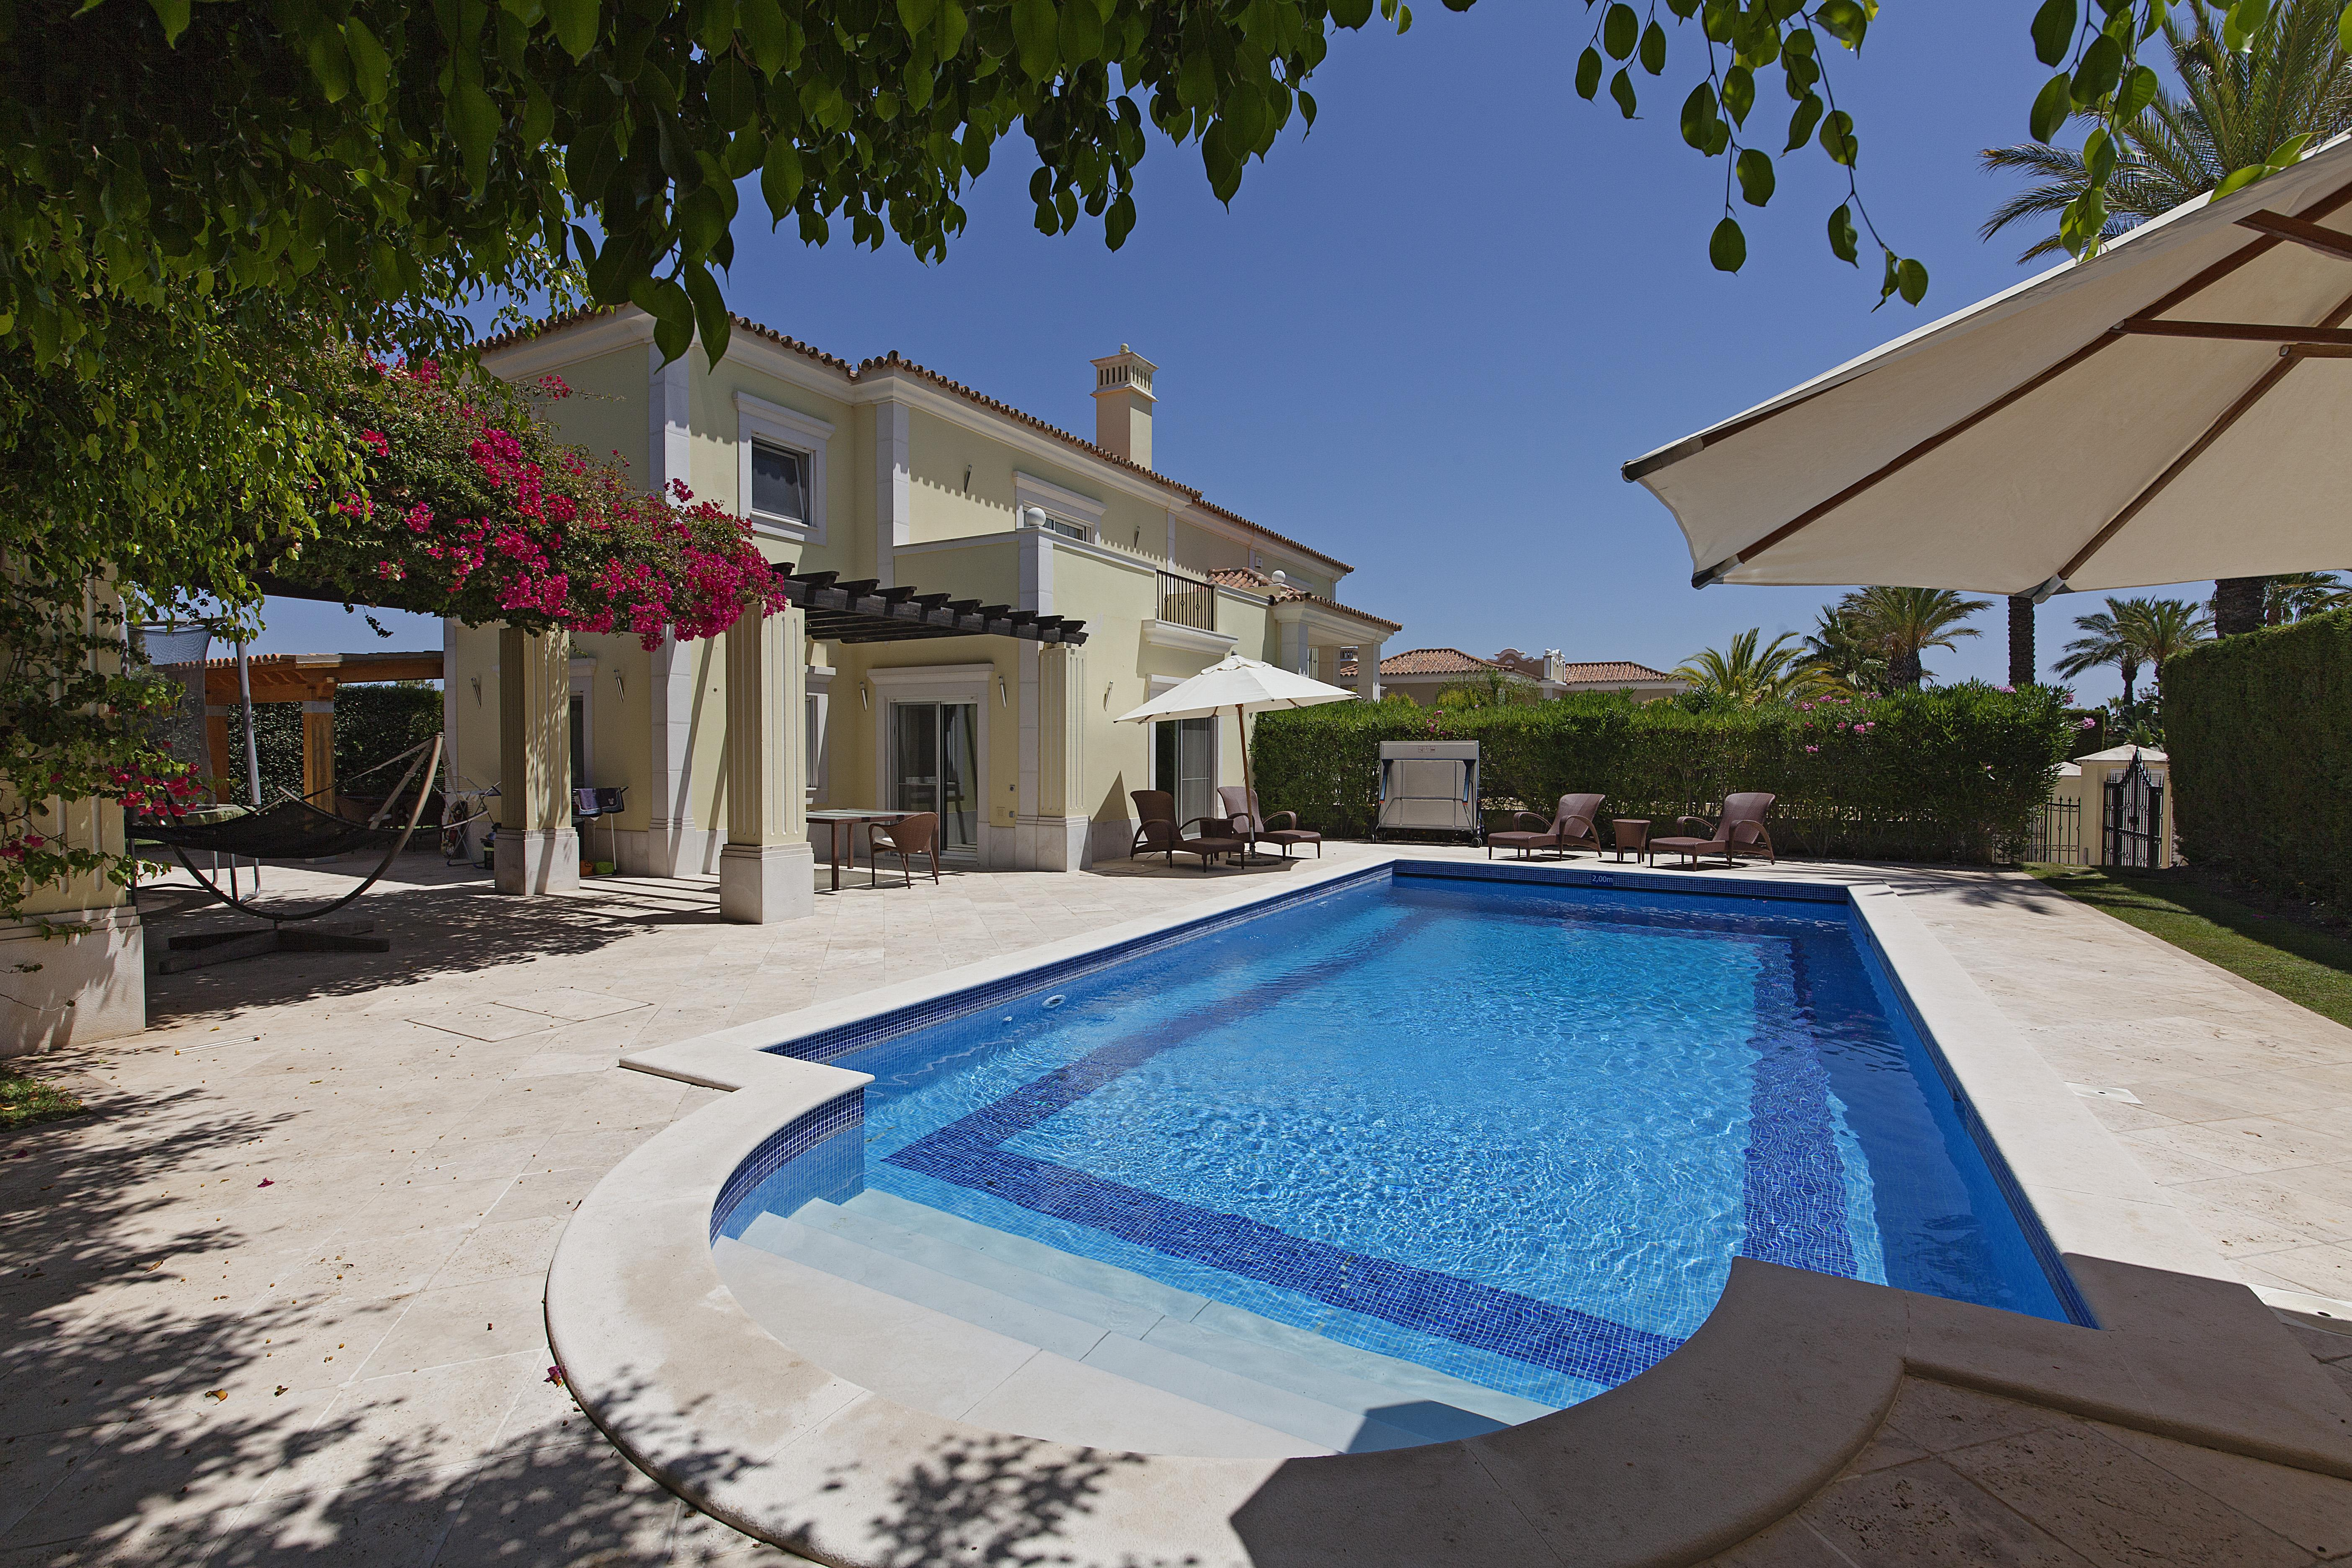 Single Family Home for Sale at Detached house, 4 bedrooms, for Sale Loule, Algarve, 8135-172 Portugal